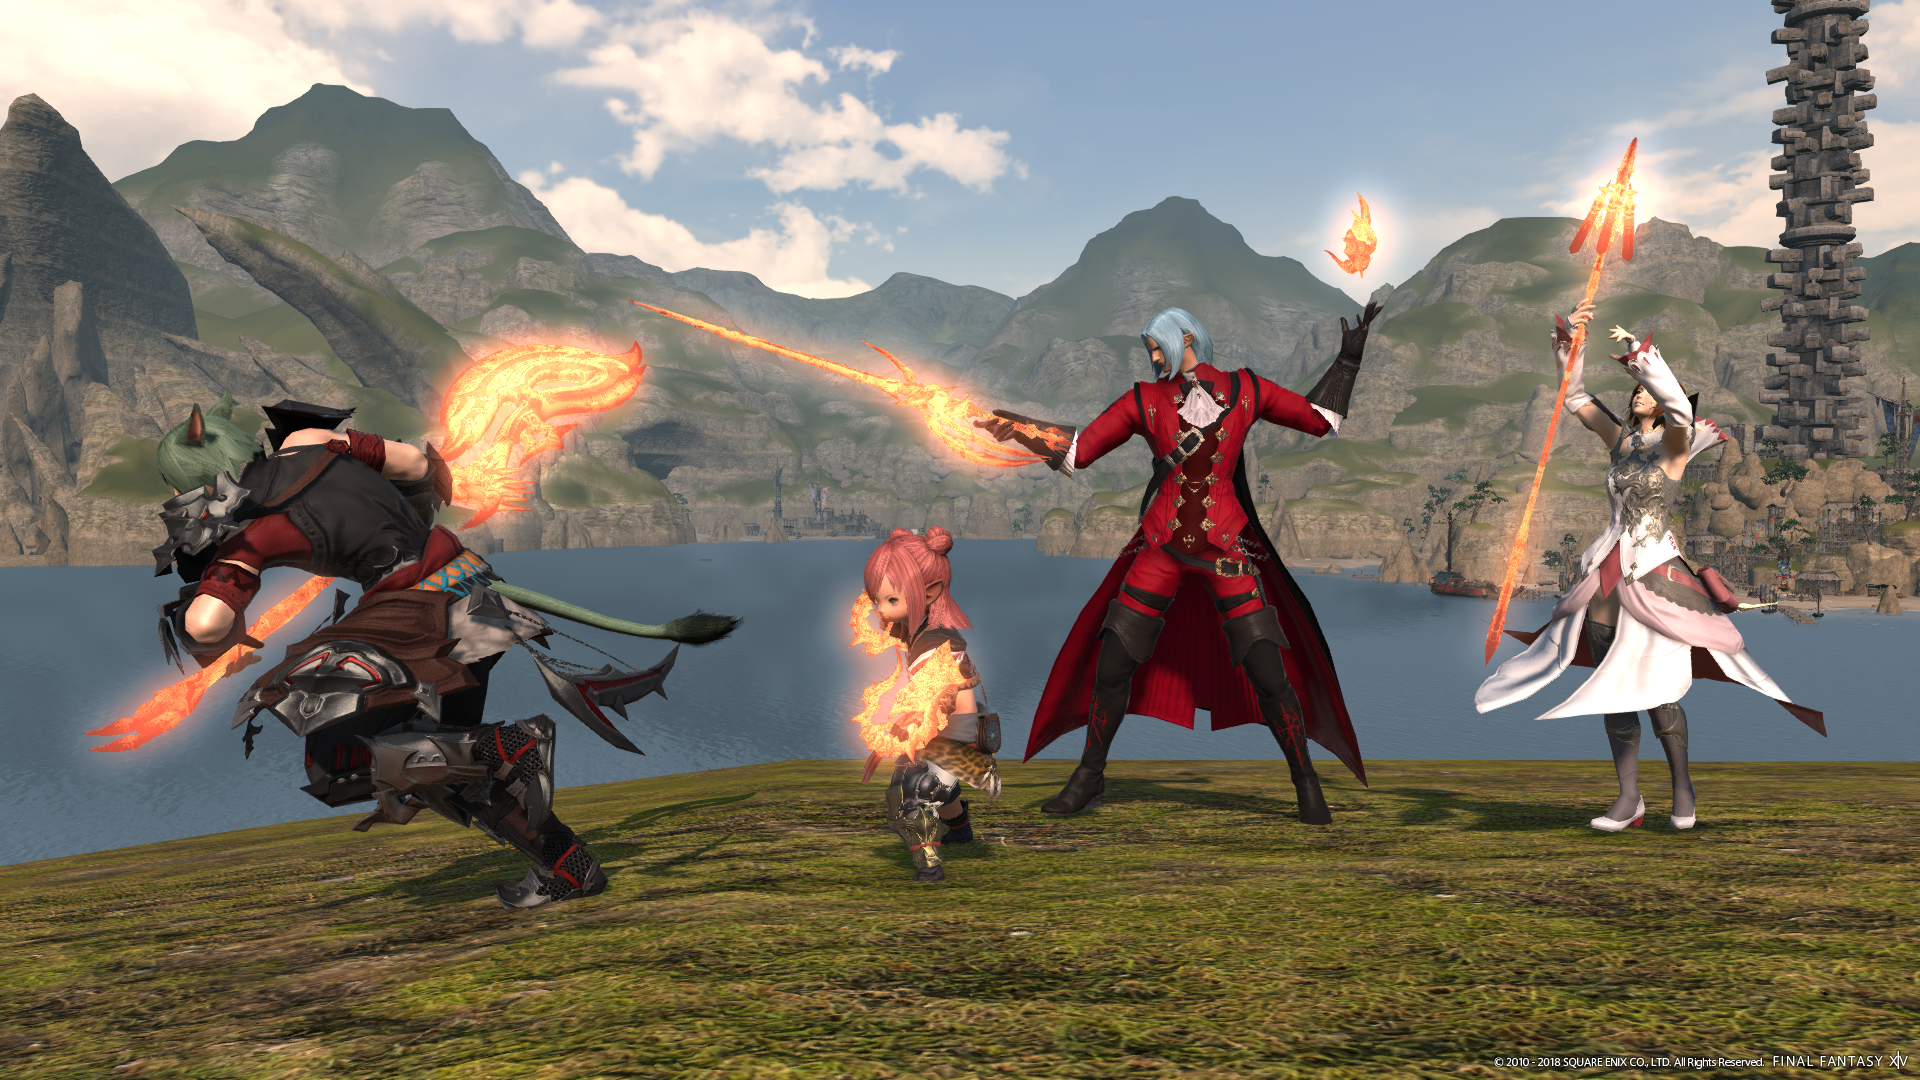 Final Fantasy Xiv Opens The Doors To Heaven On High And The Feast Regional